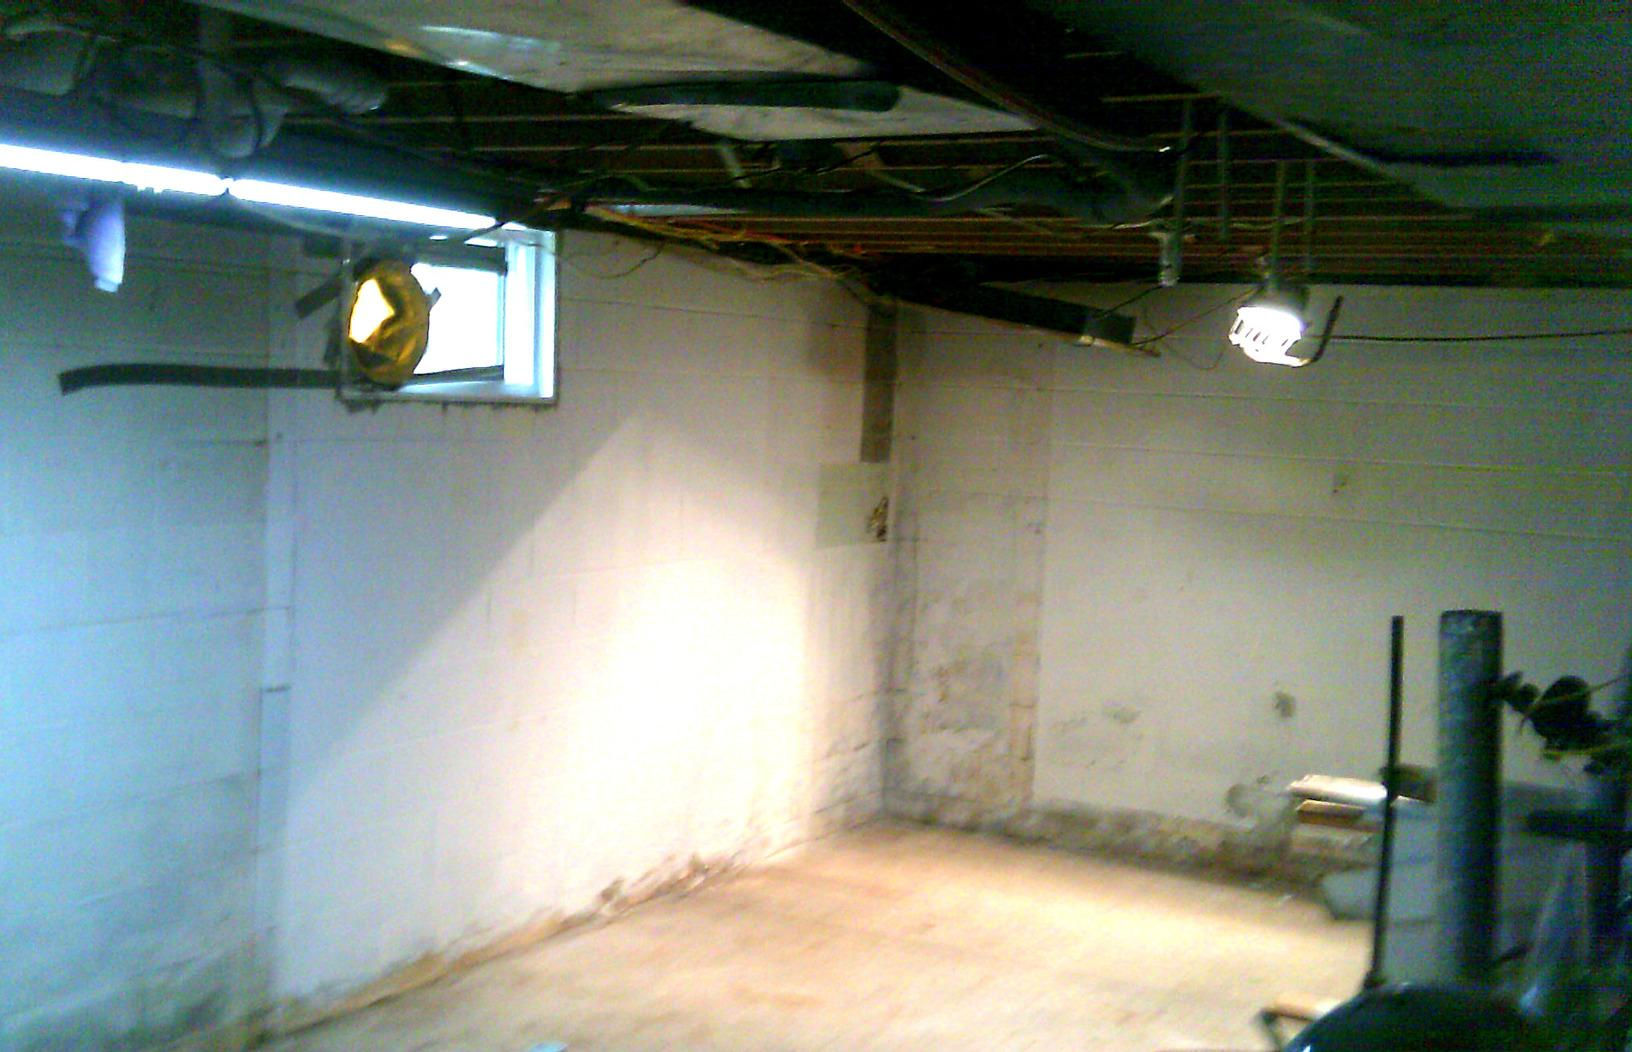 The basement before any installations.